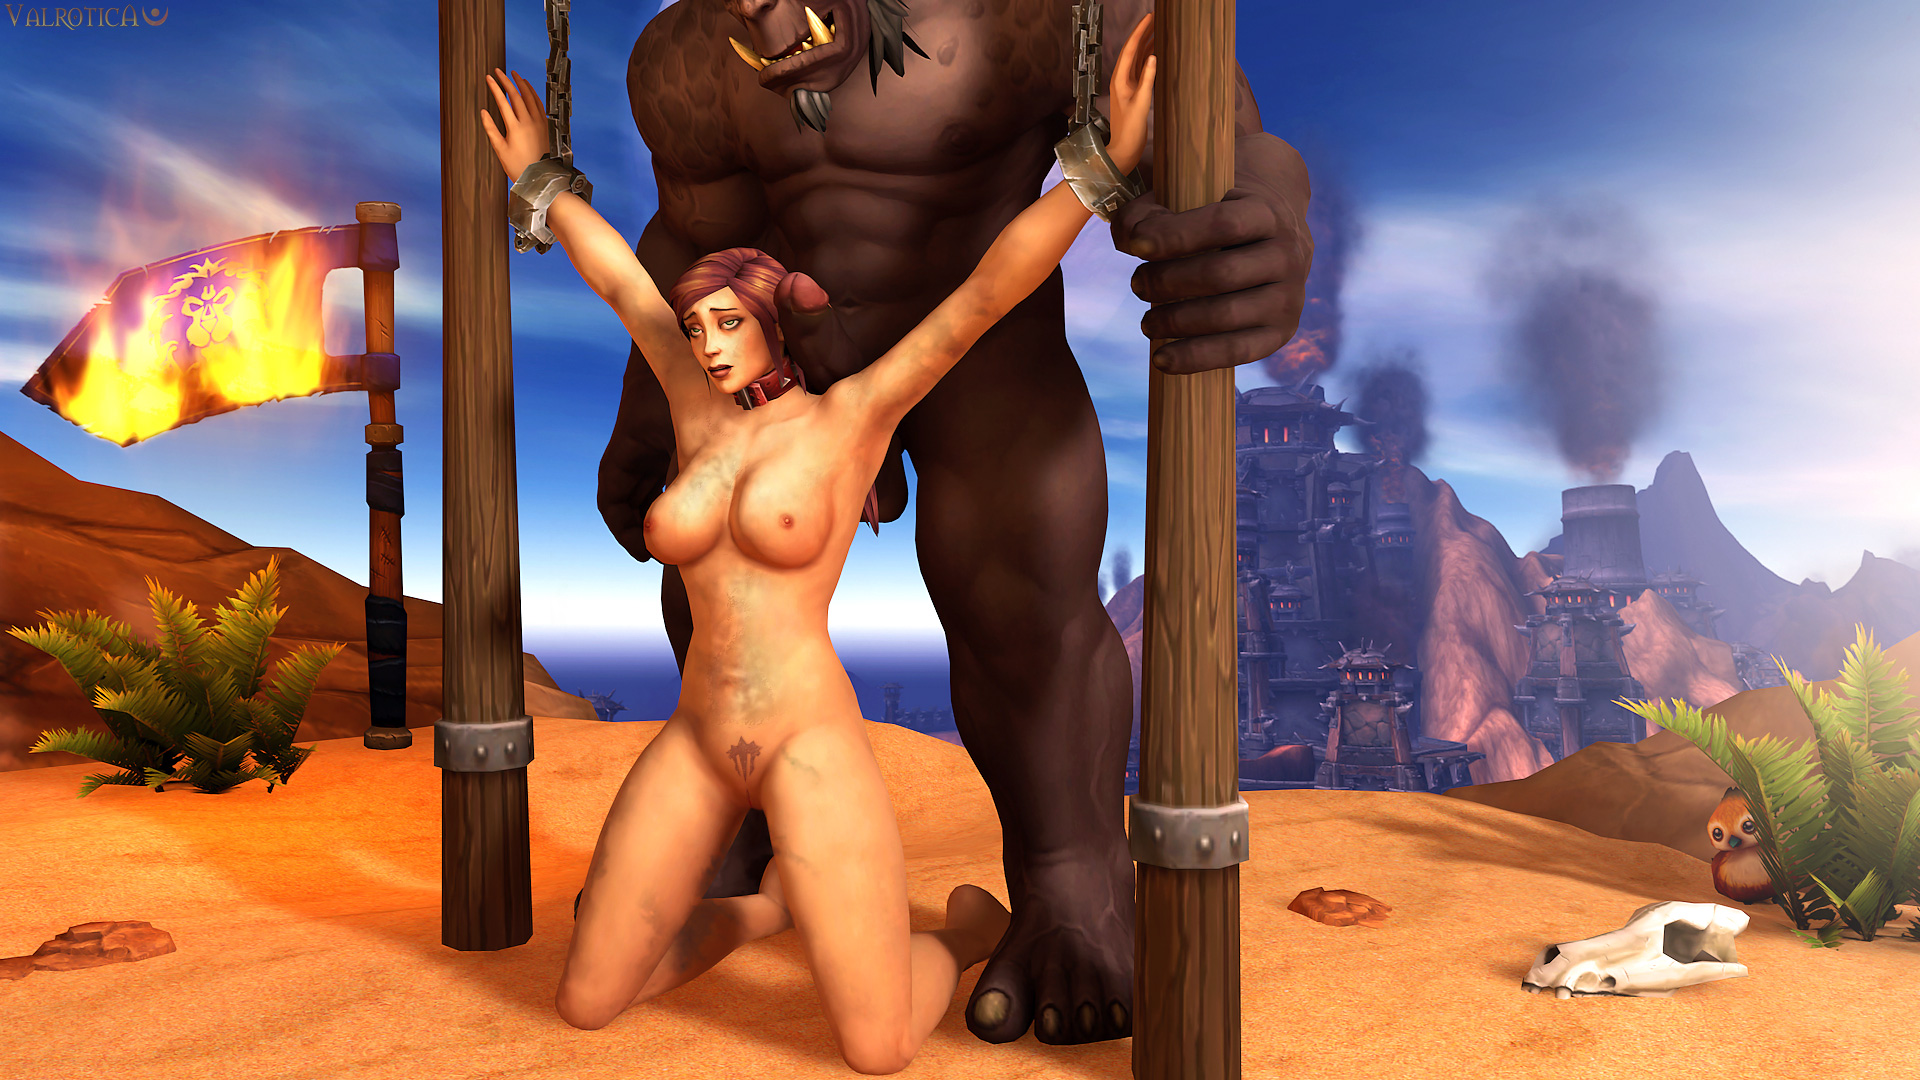 World of warcraft human boobs porn scene